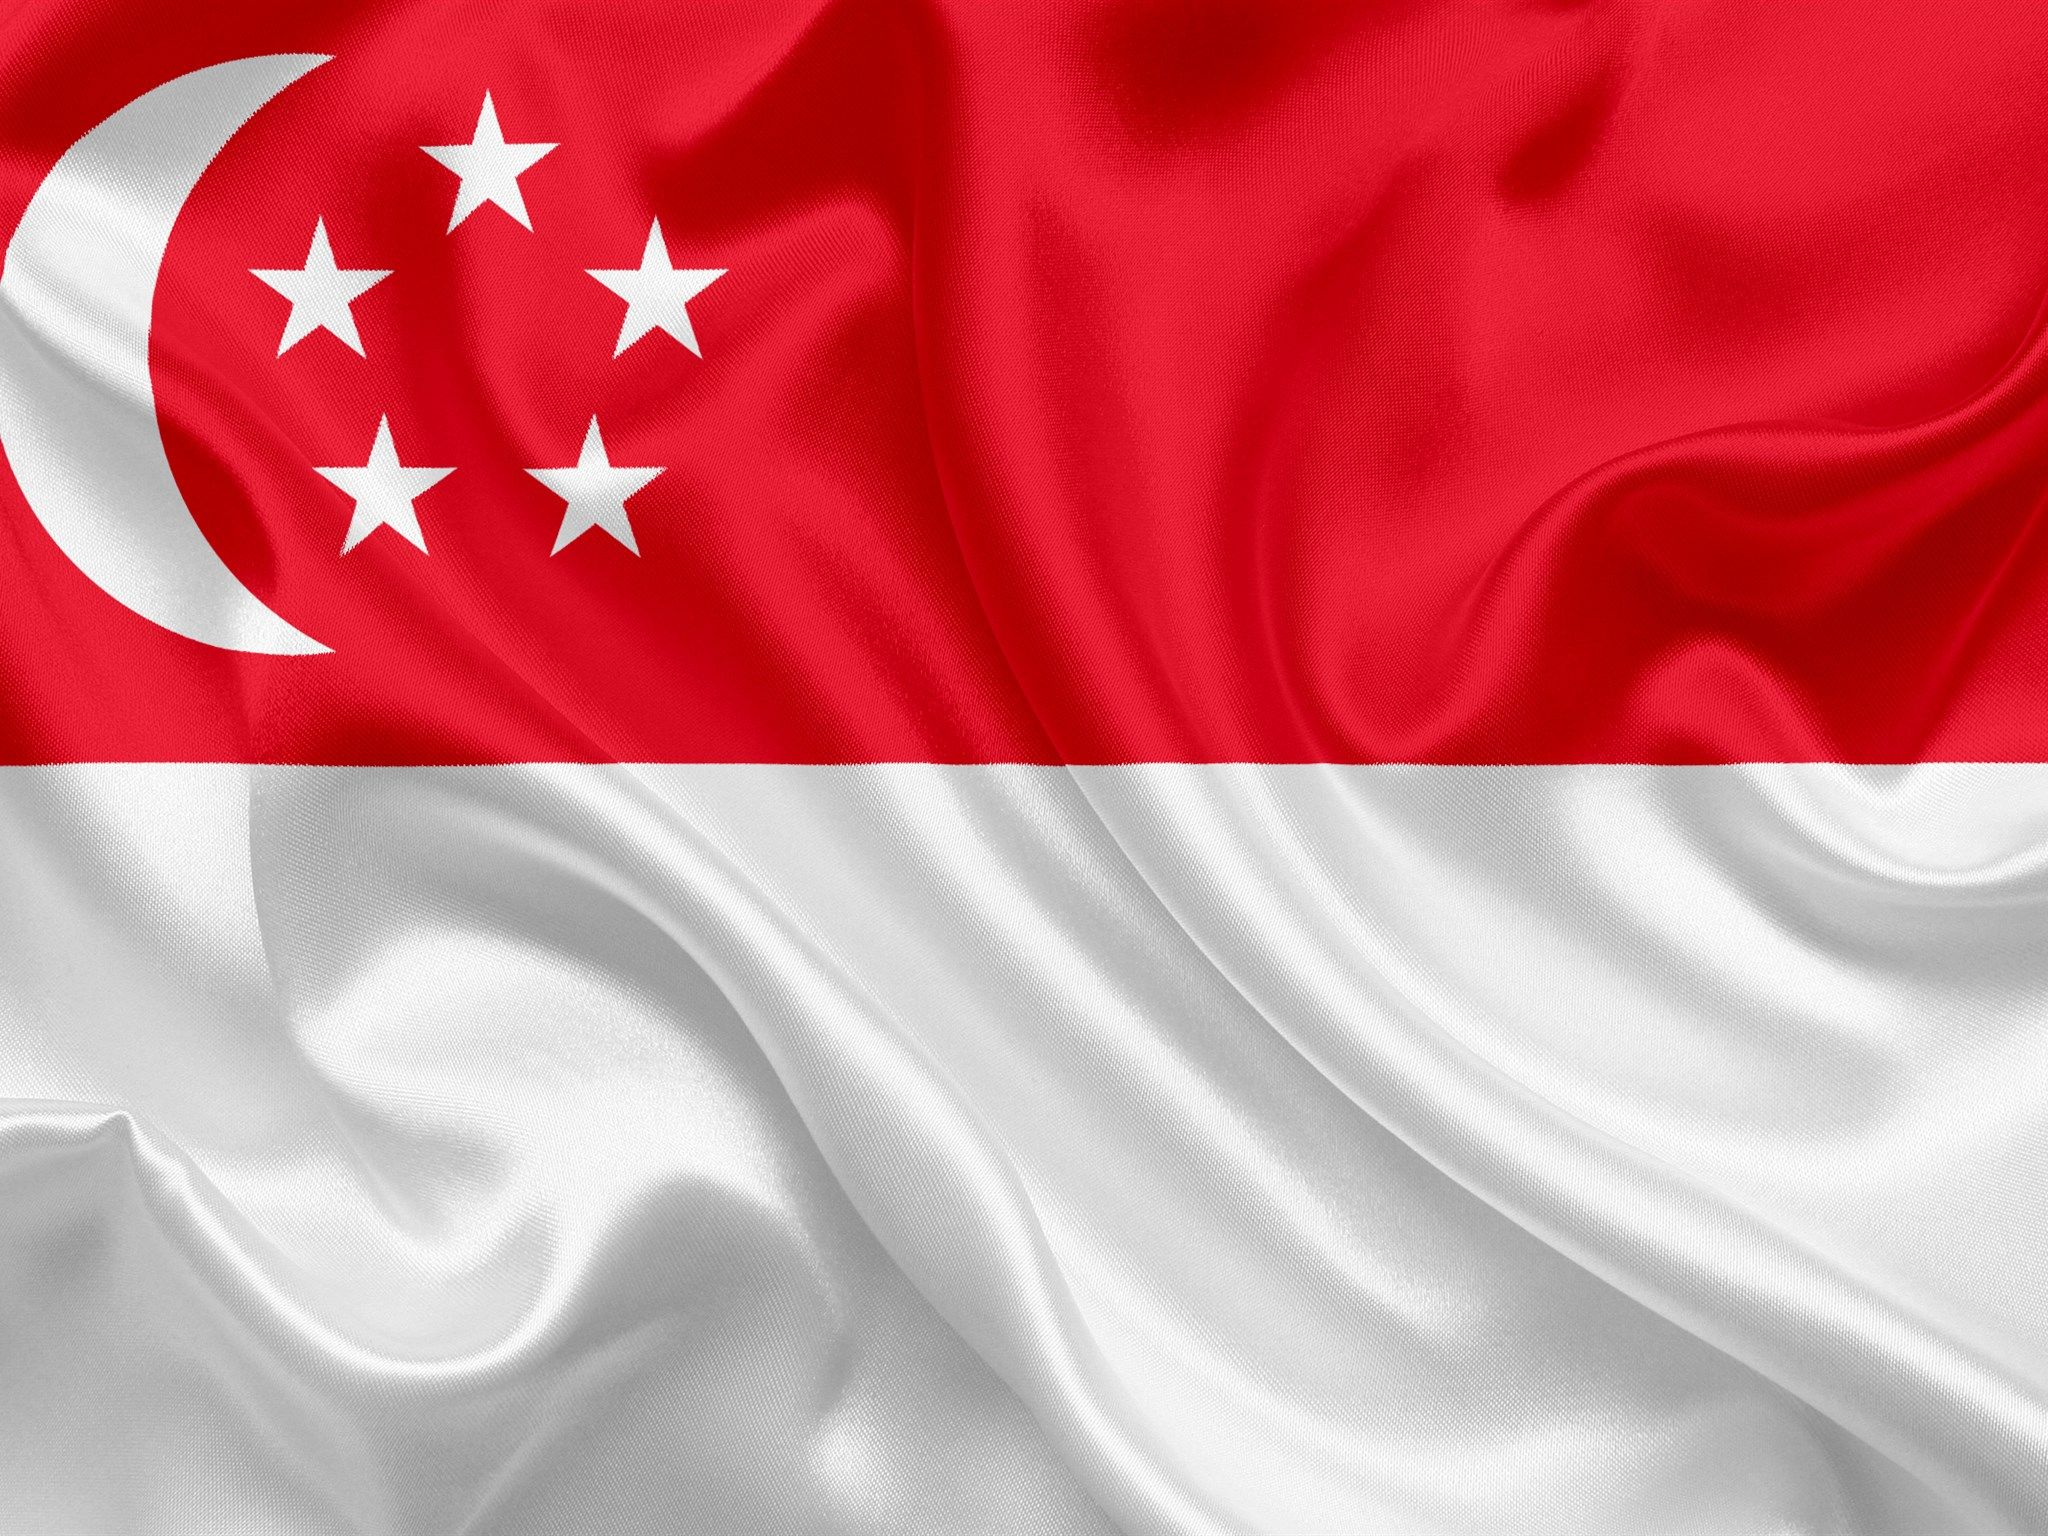 Flag Of Singapore In 2020 Singapore Flag Singapore National Day Singapore